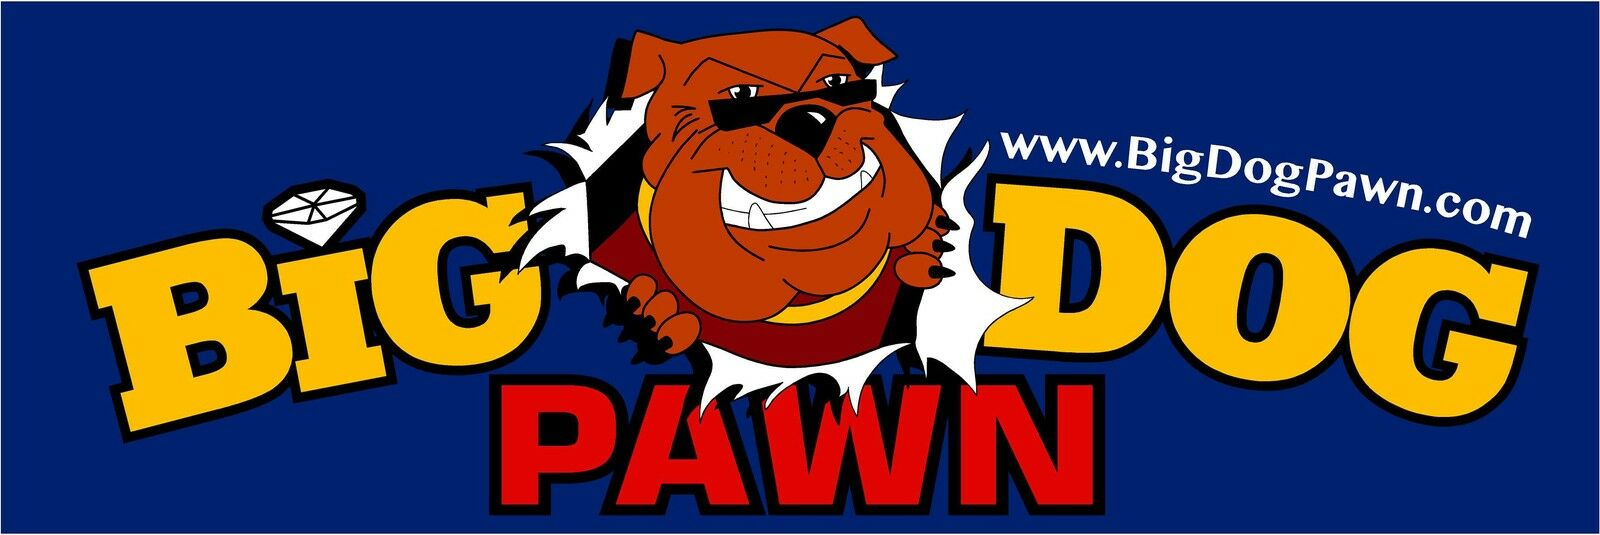 Big Dog Pawn (maddogpawns)